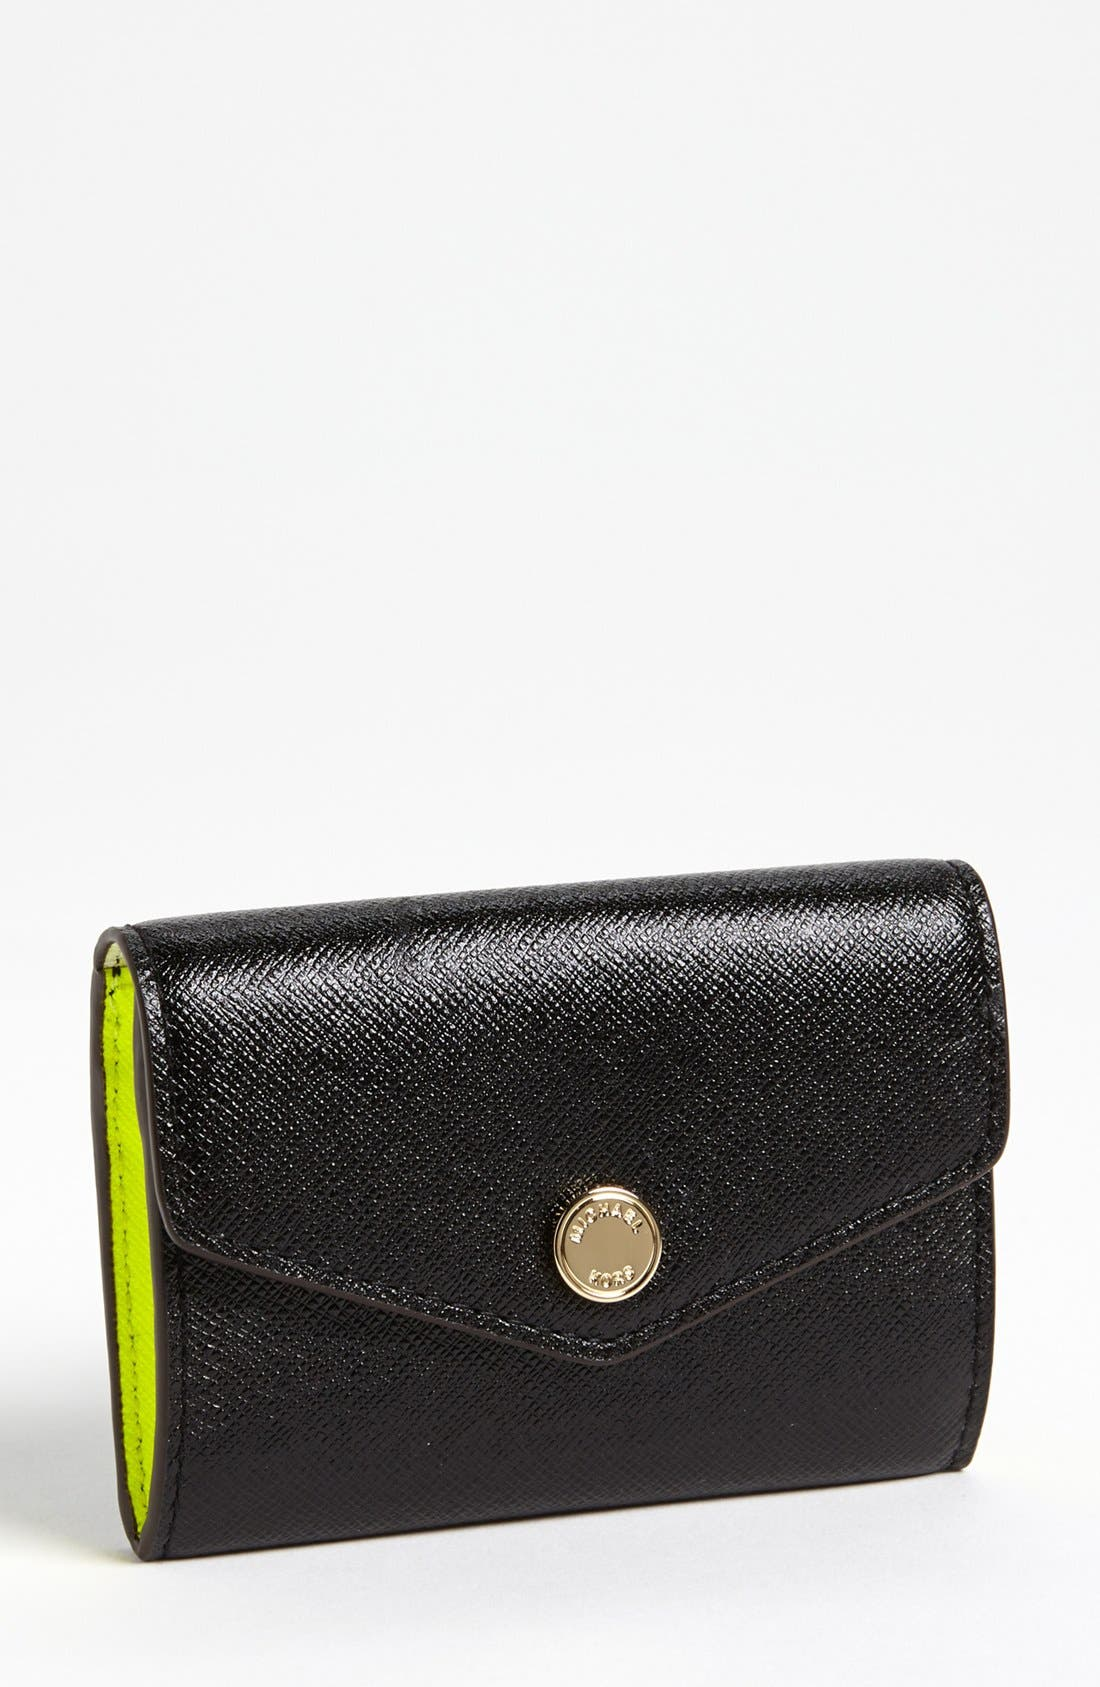 Main Image - MICHAEL Michael Kors Saffiano Leather Coin Purse